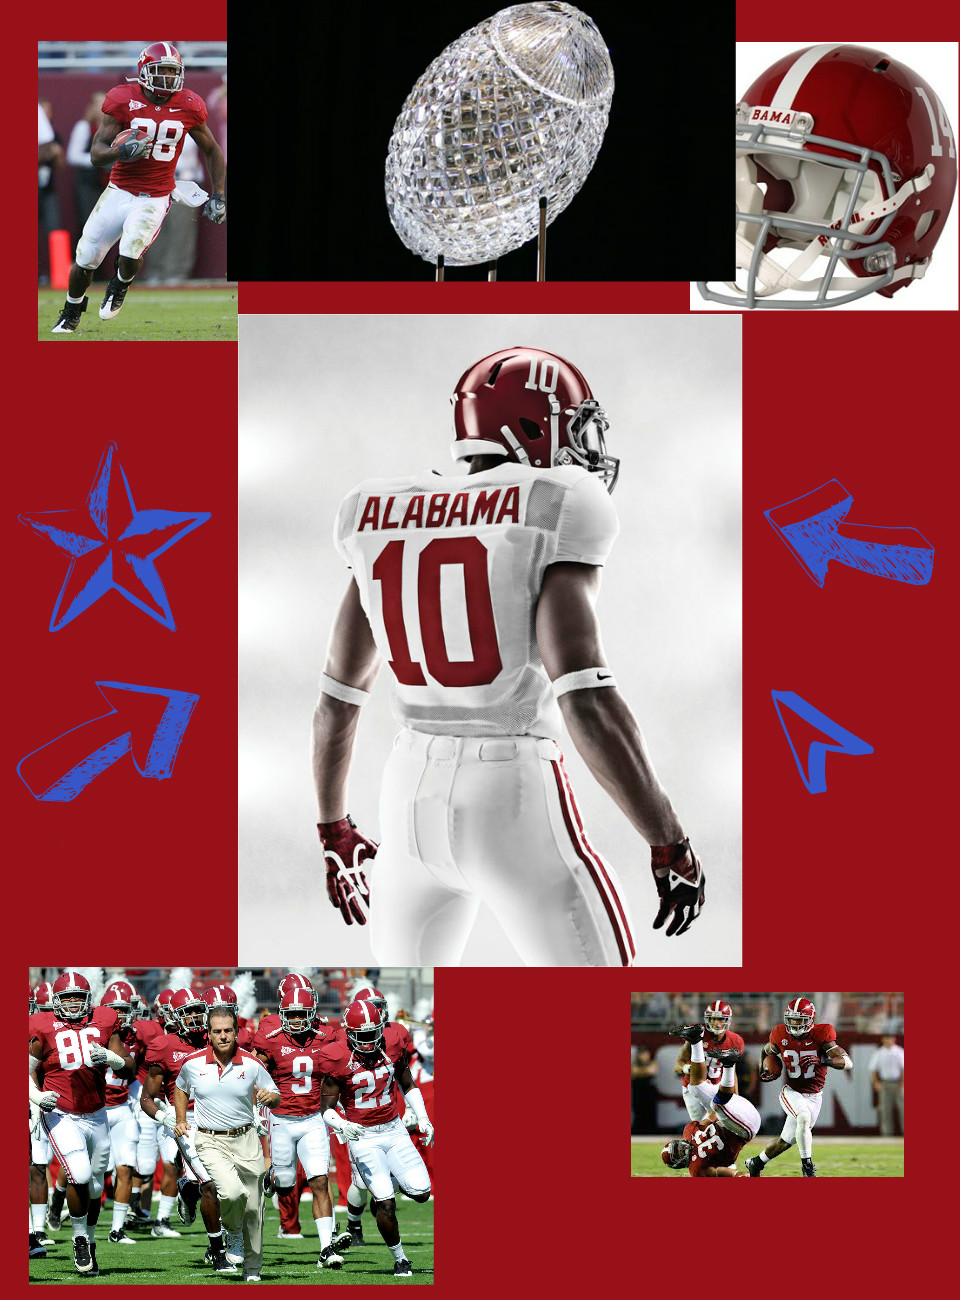 bama all day long's thumbnail